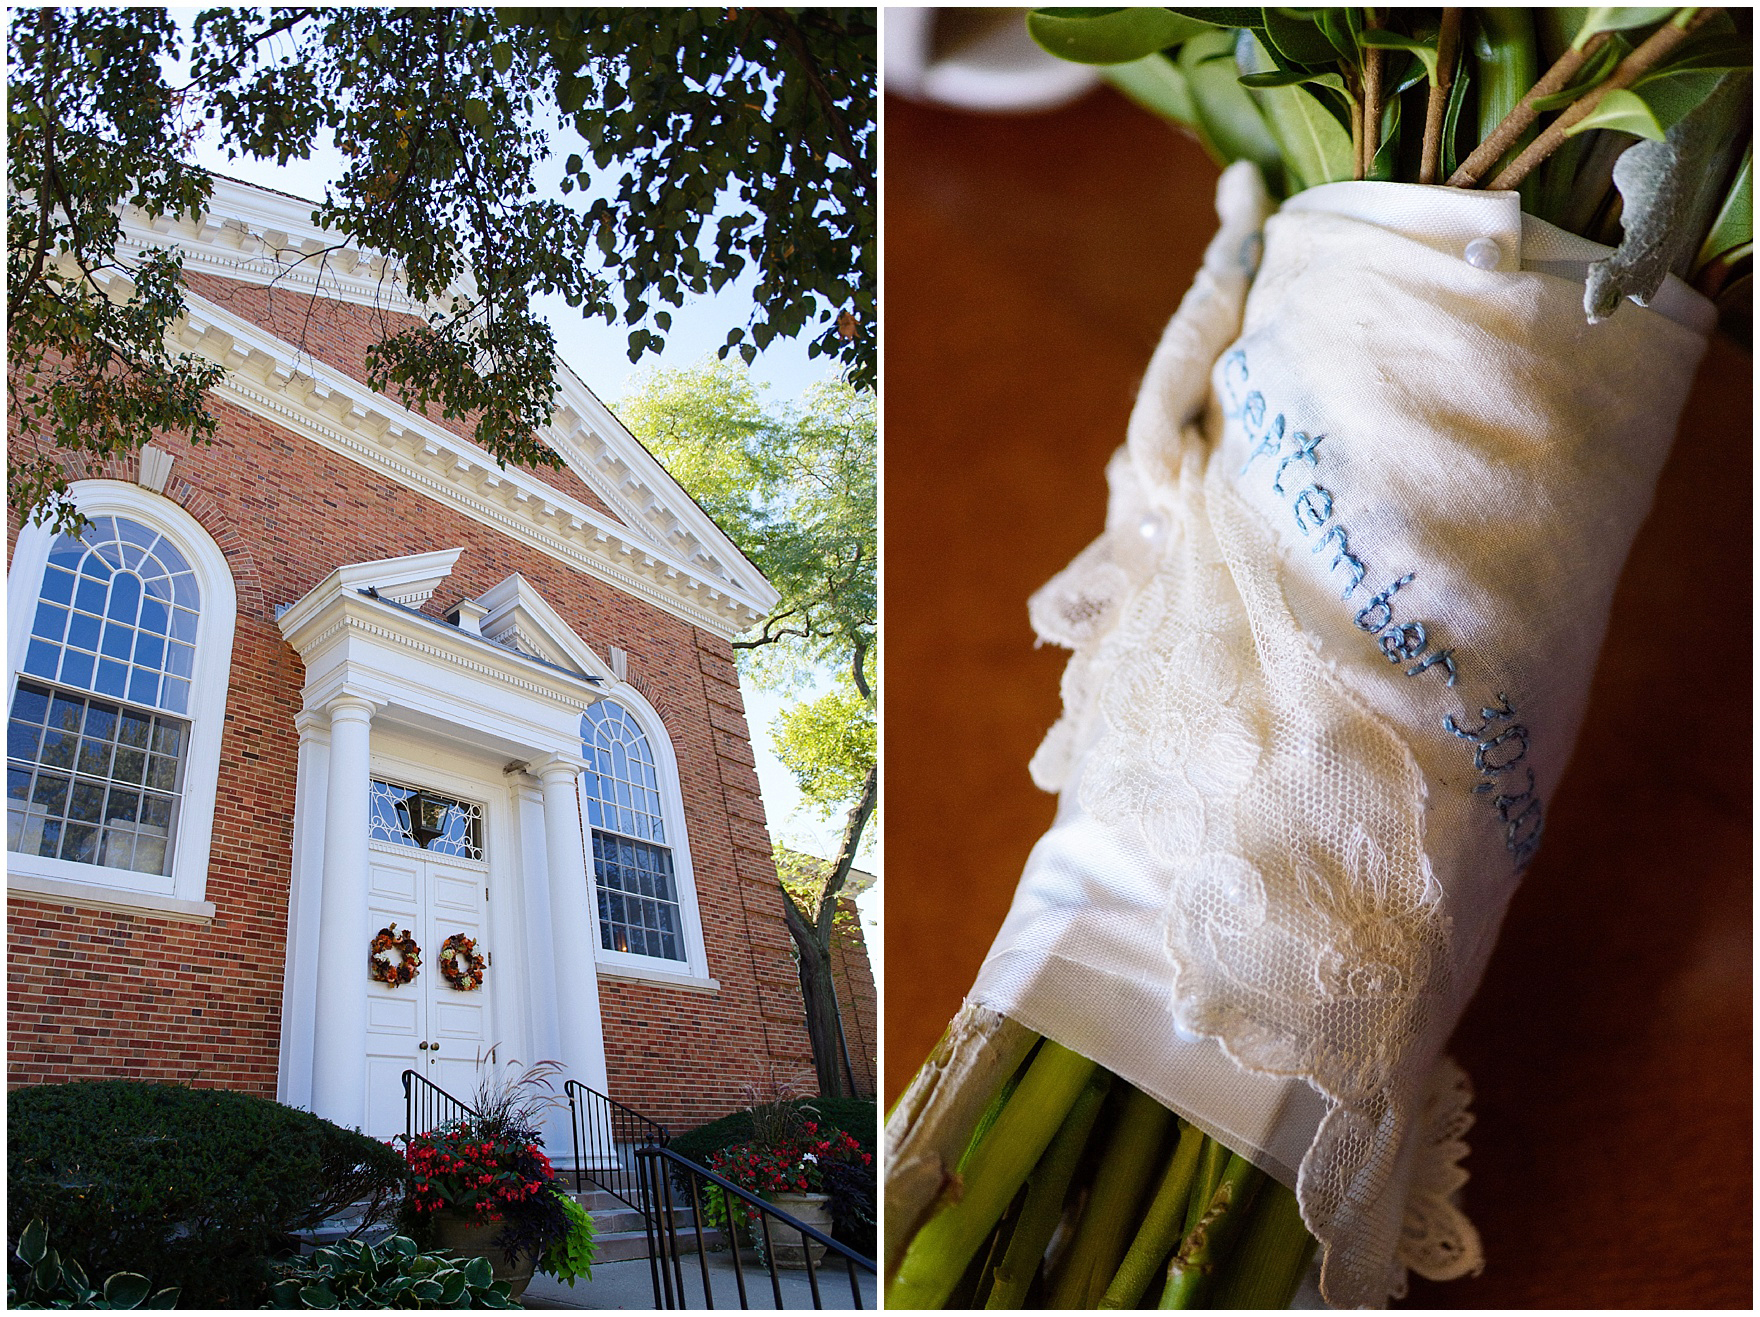 The bride's bouquet is wrapped in a hand-embroidered handkerchief before a Glen Club Glenview Illinois wedding.